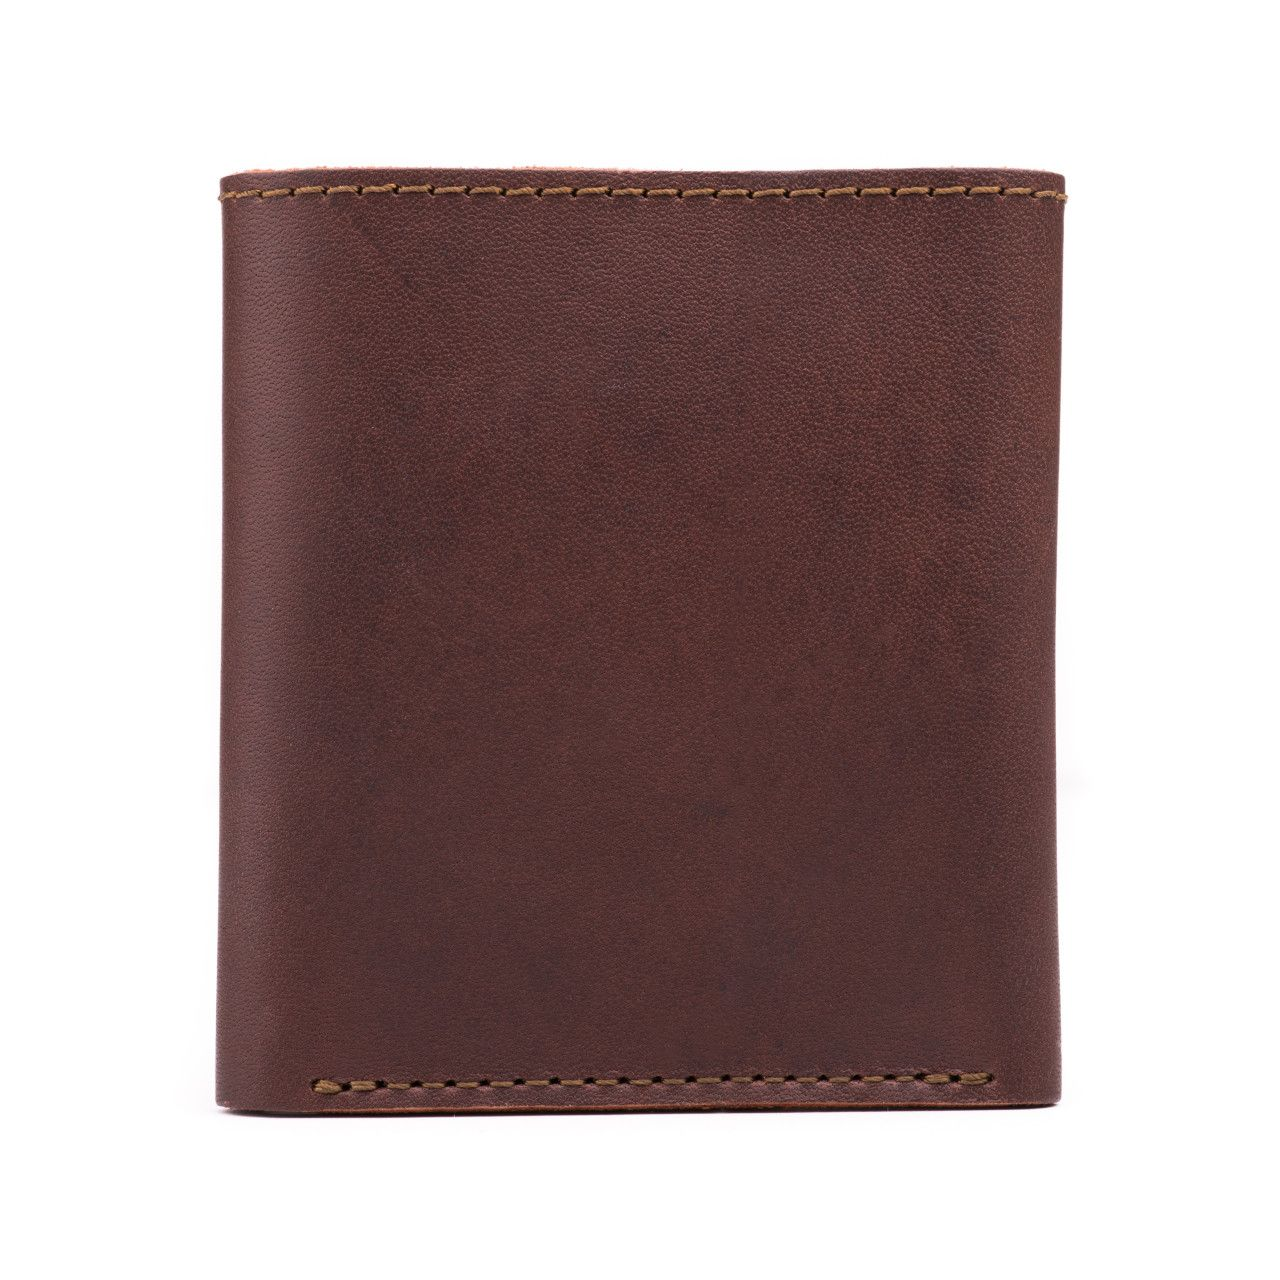 leather trifold wallet in chestnut leather